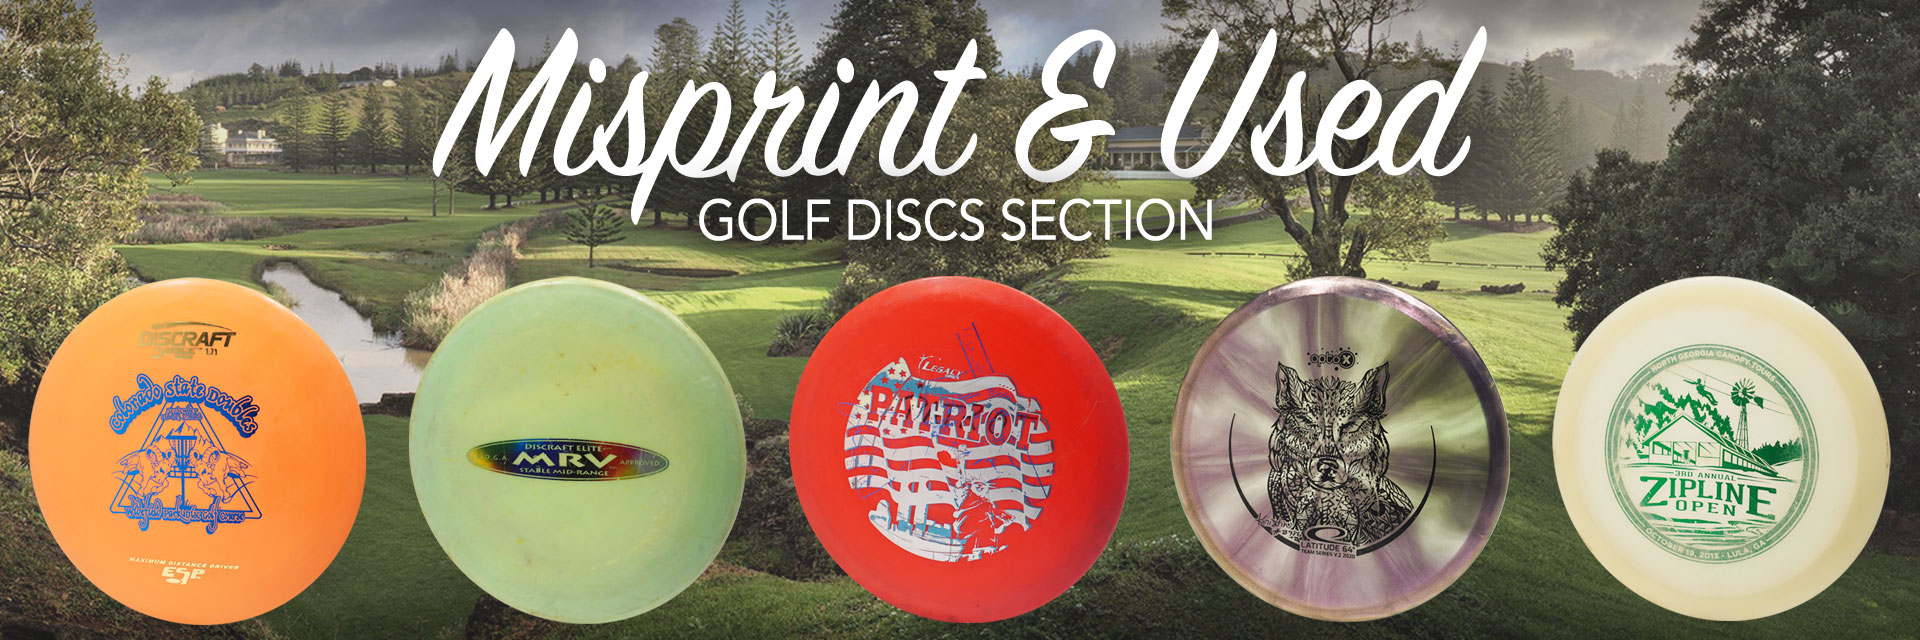 Misprint & Used Golf Discs Section